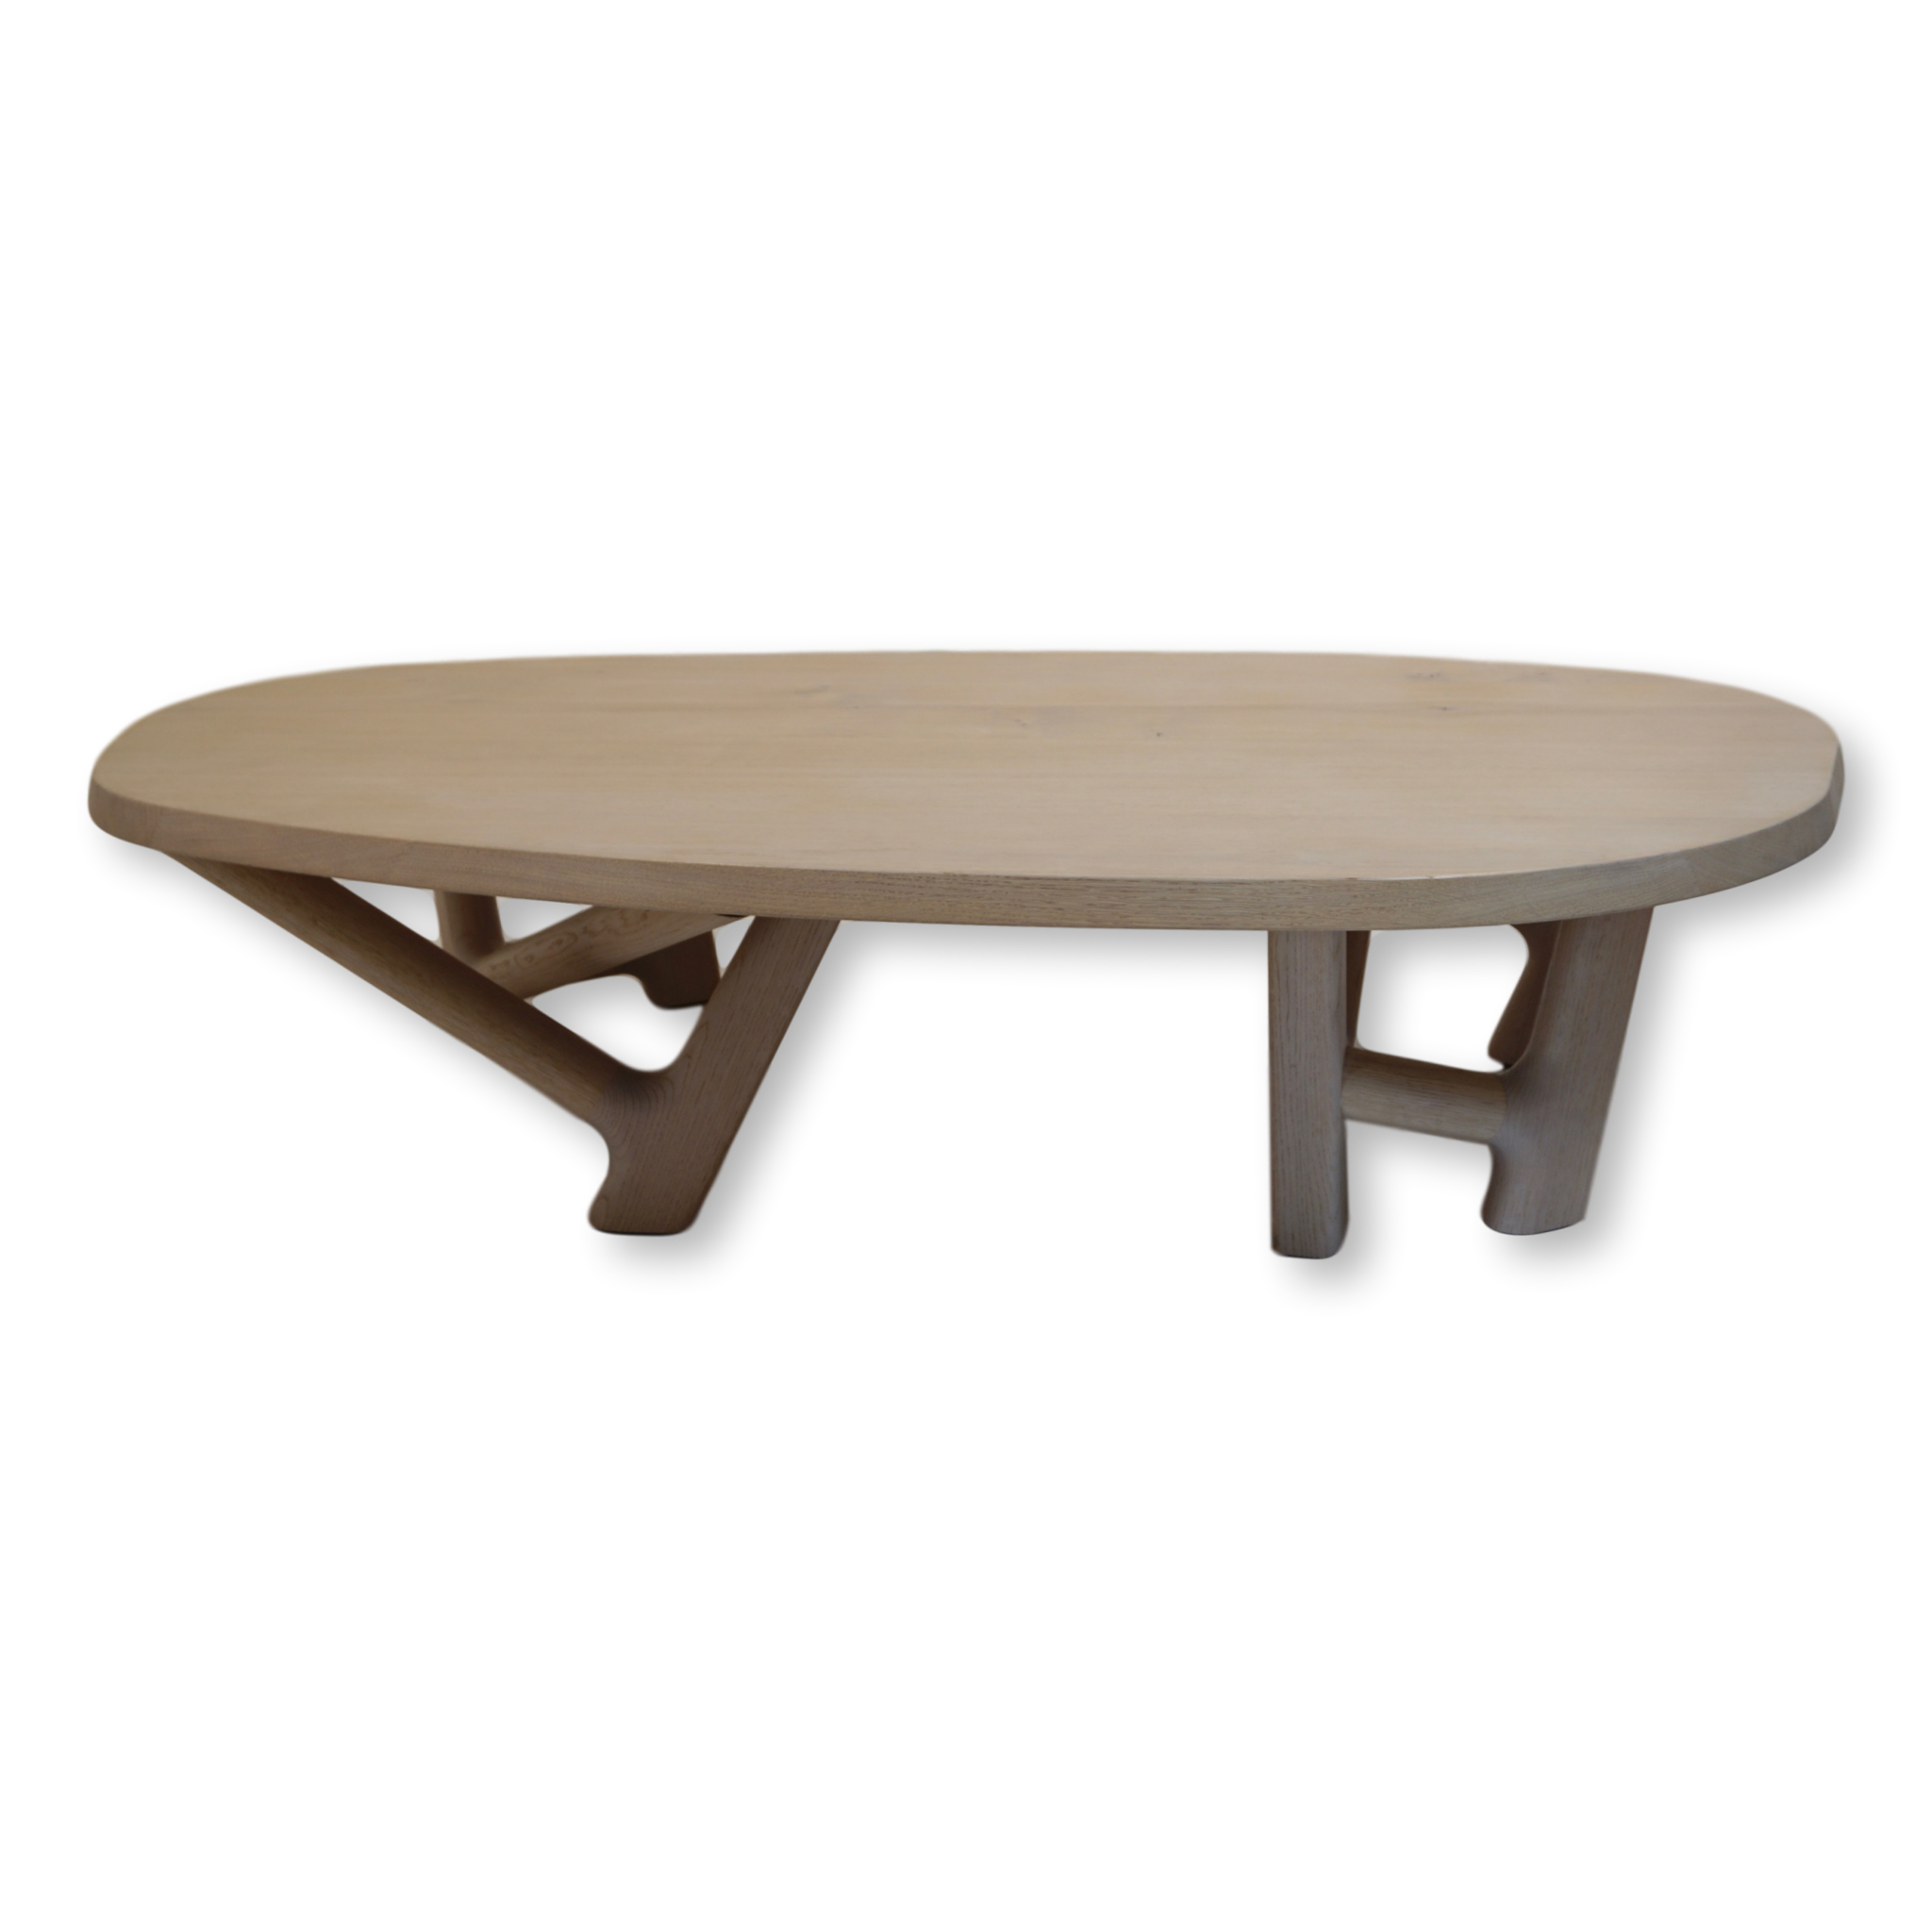 Christophe Delcourt Oba Coffee Table Coffee Table Wood Coffee Table Table [ 2048 x 2048 Pixel ]